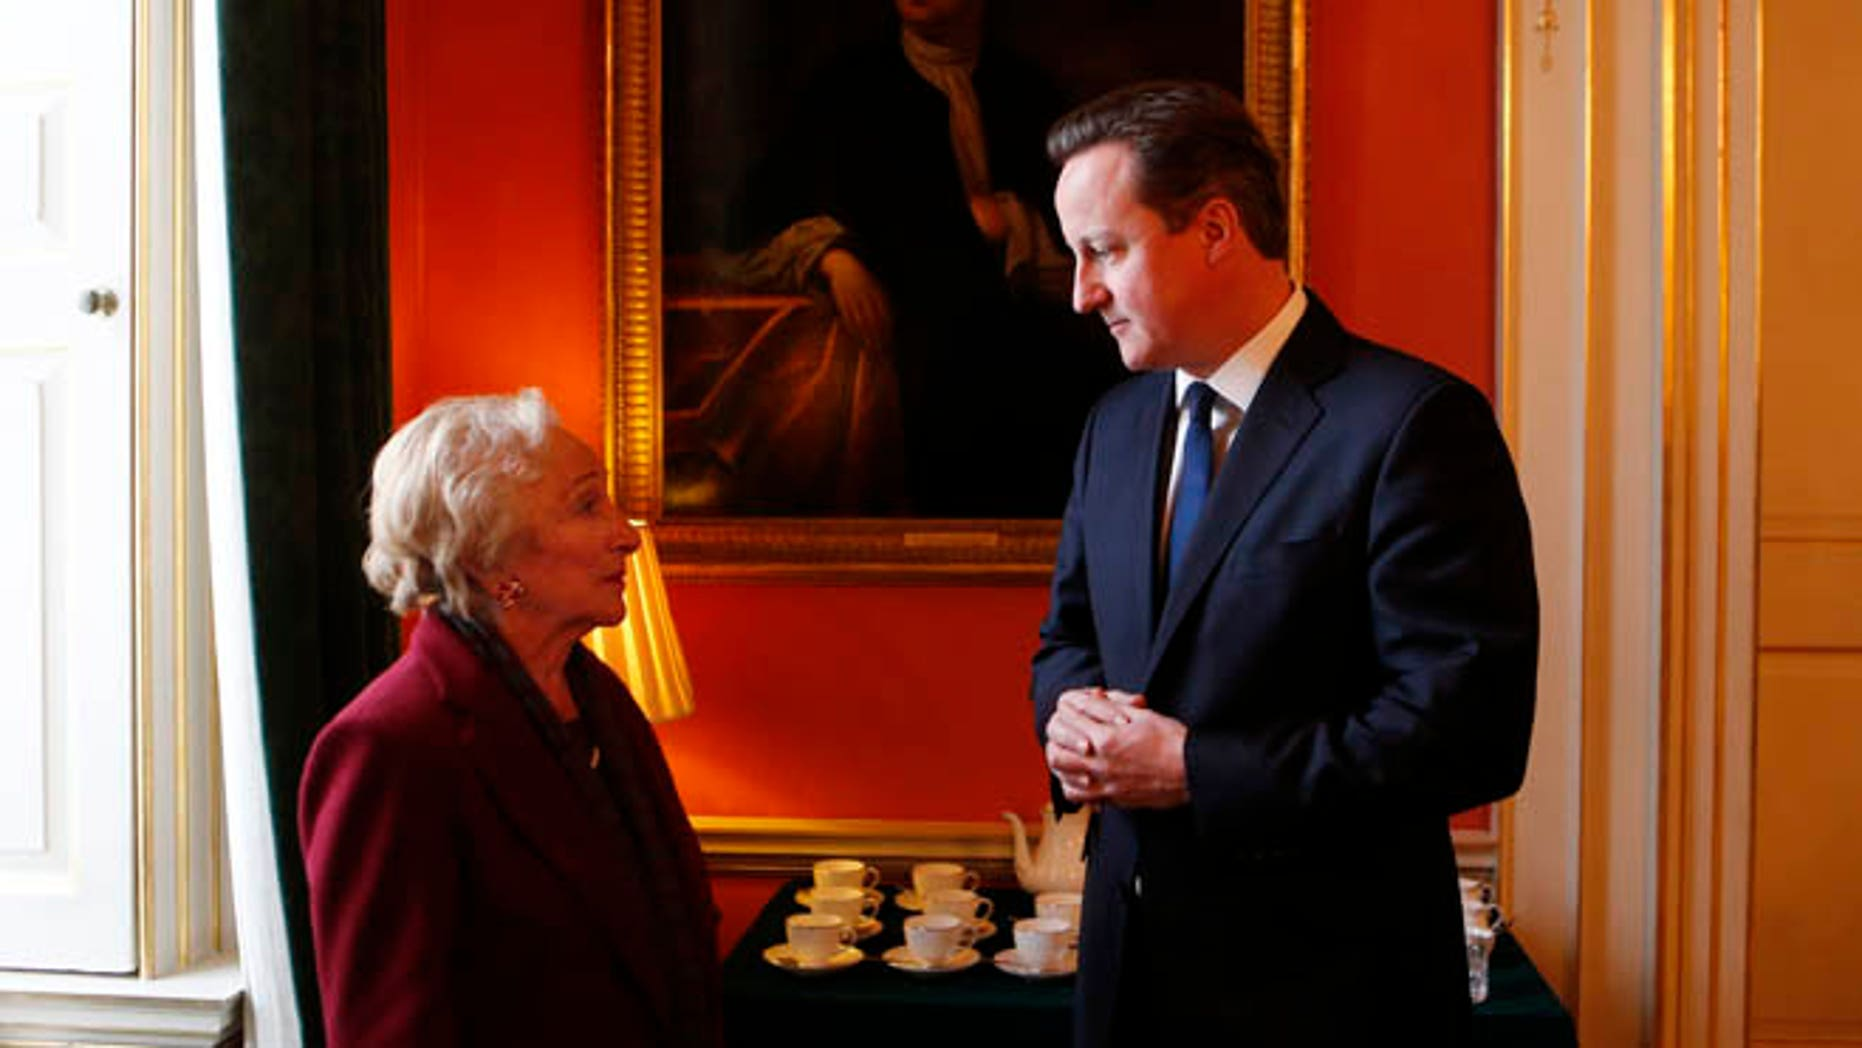 Jan. 21, 2013: British Prime Minister David Cameron talks with Holocaust survivor Freda Wineman ahead of Holocaust Memorial Day   at 10 Downing Street in London.